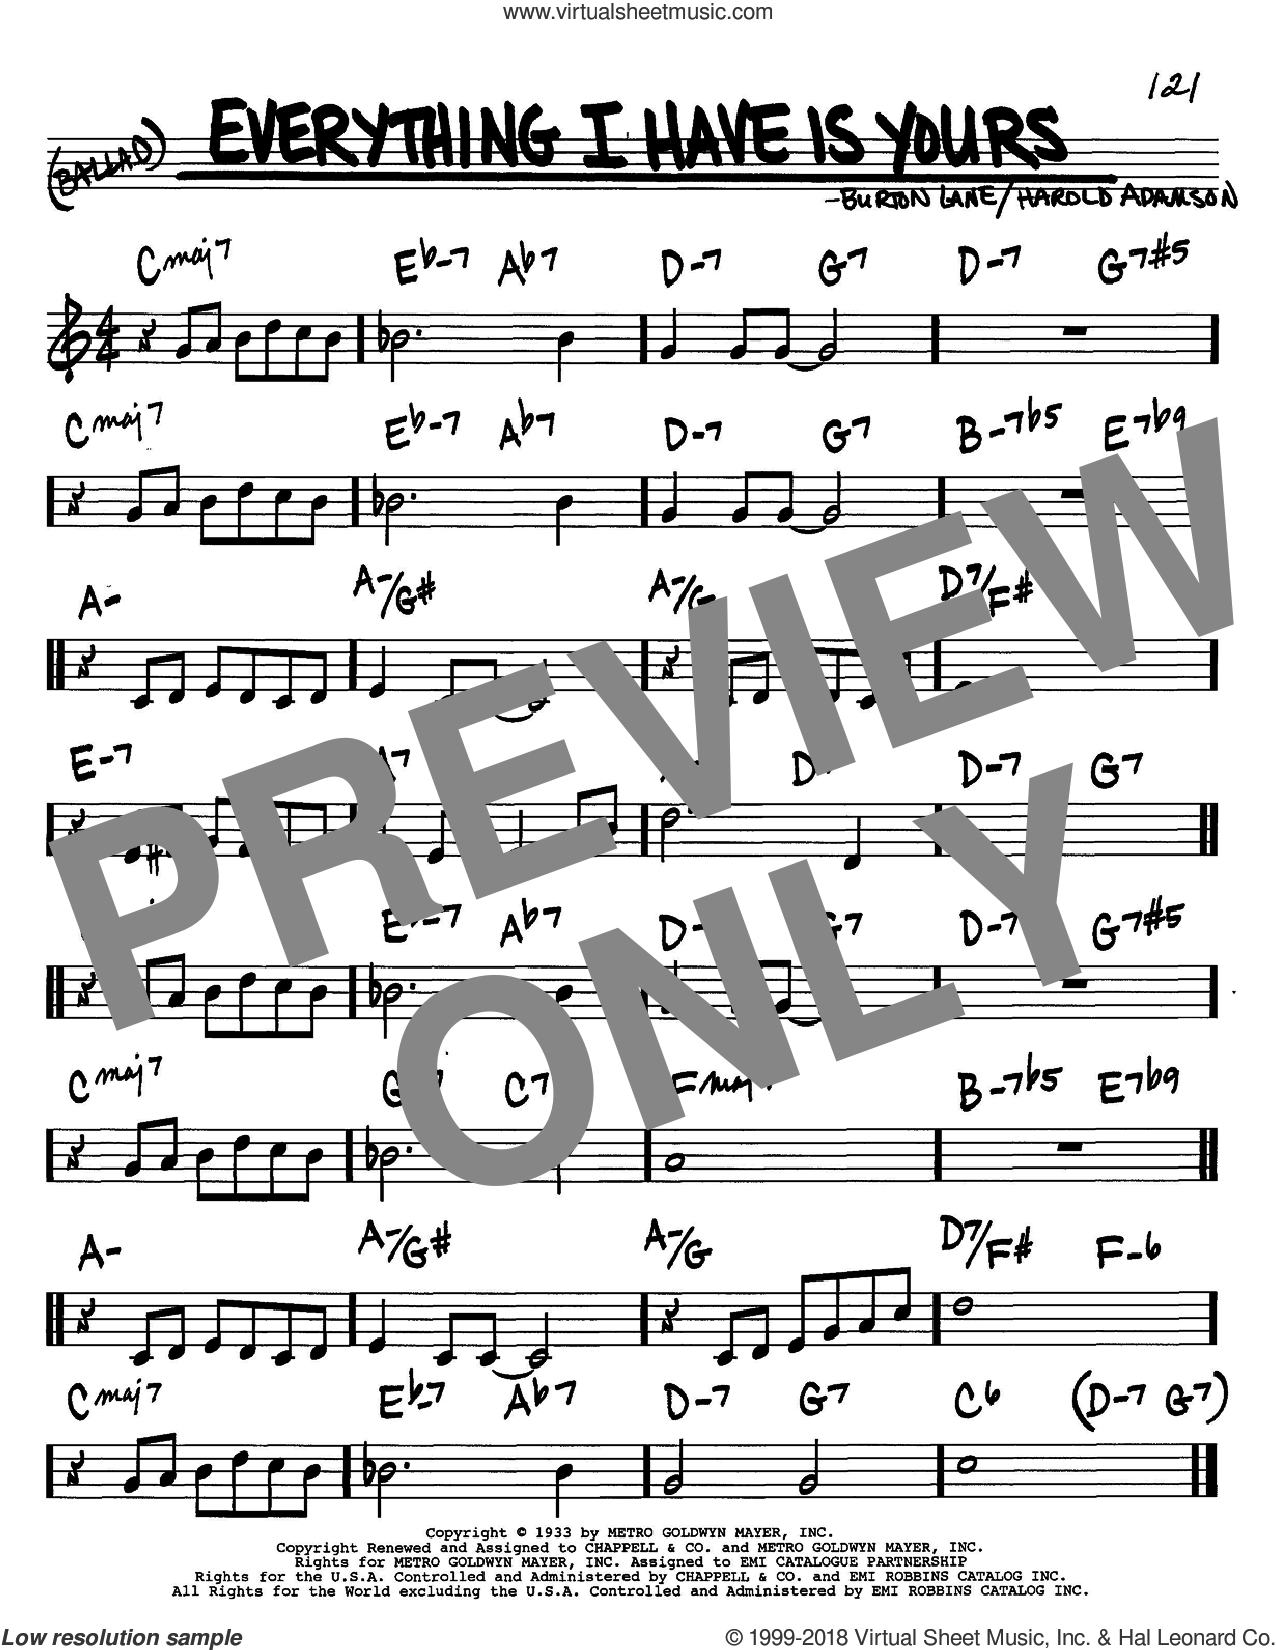 Everything I Have Is Yours sheet music for voice and other instruments (in C) by Harold Adamson and Burton Lane, intermediate skill level